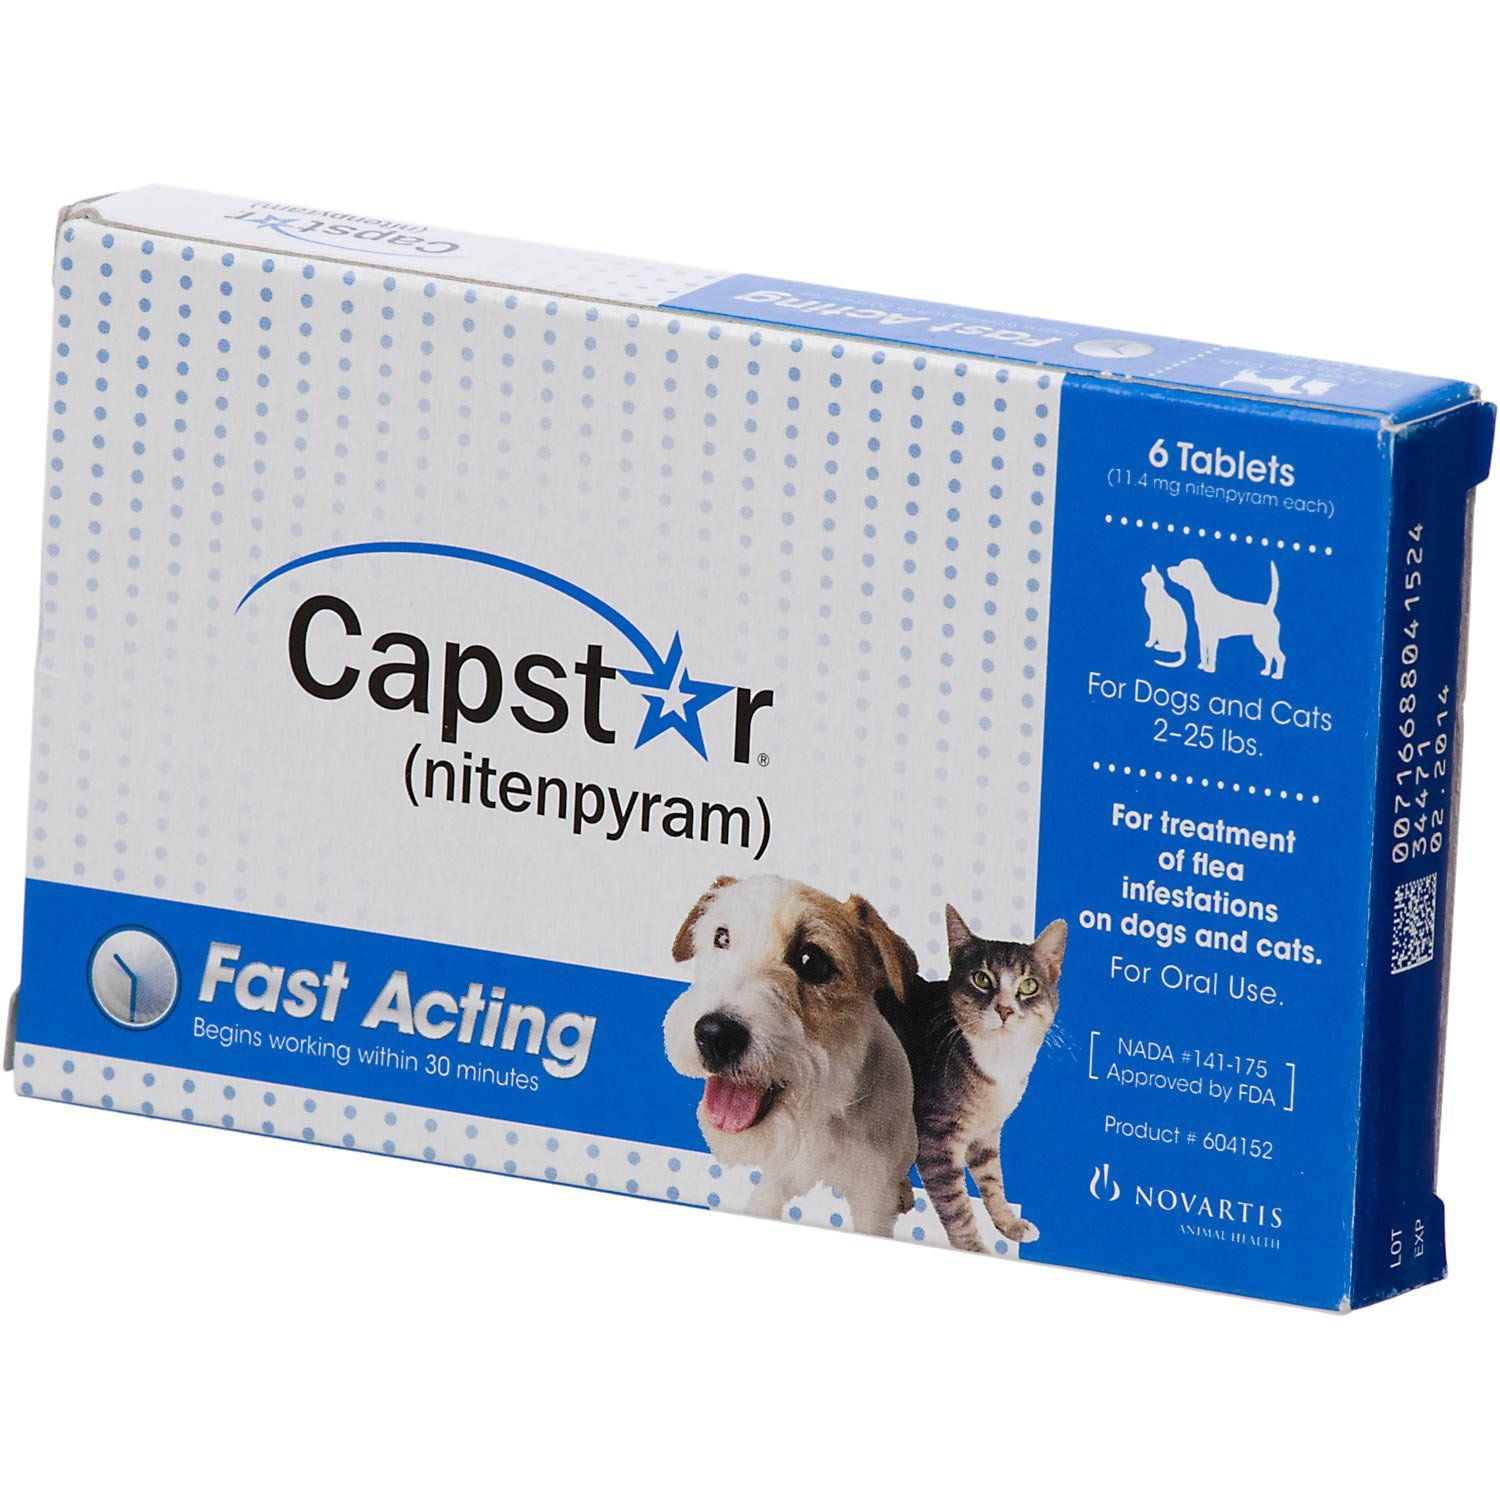 Capstar Flea Tablets for Dogs and Cats, 2-25lbs.